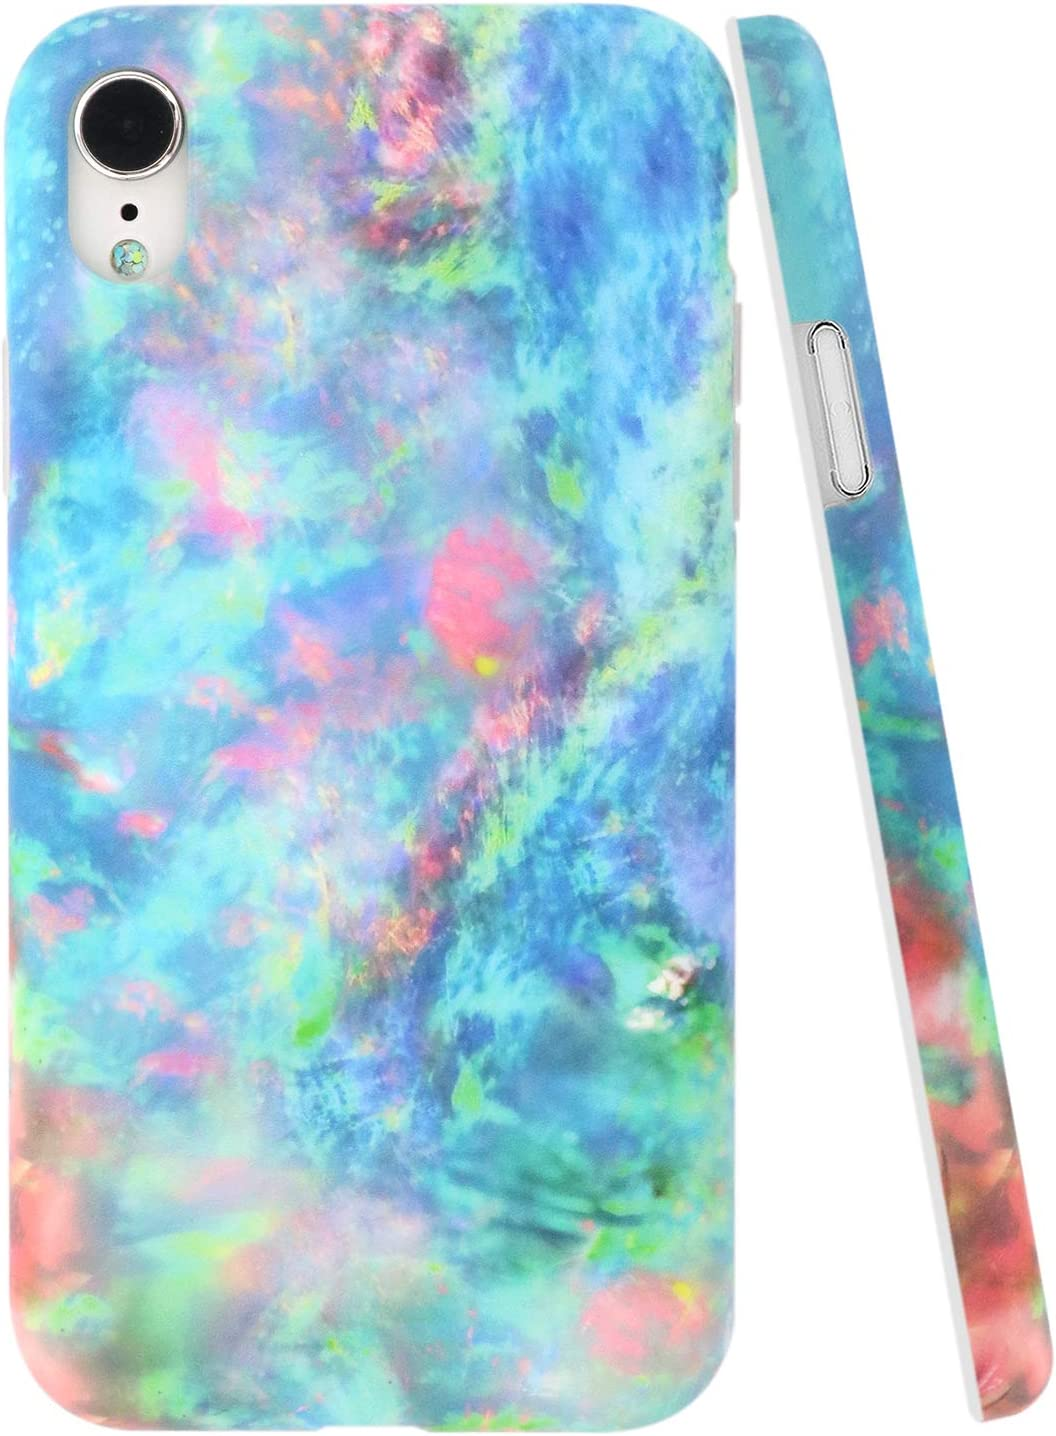 A-Focus Case for iPhone XR Case Colorful, Green Blue Opal Marble Texture Smooth IMD Design Series Flexible TPU Rubber Cover Case for iPhone XR 2018 Release 6.1 inch Matte Green